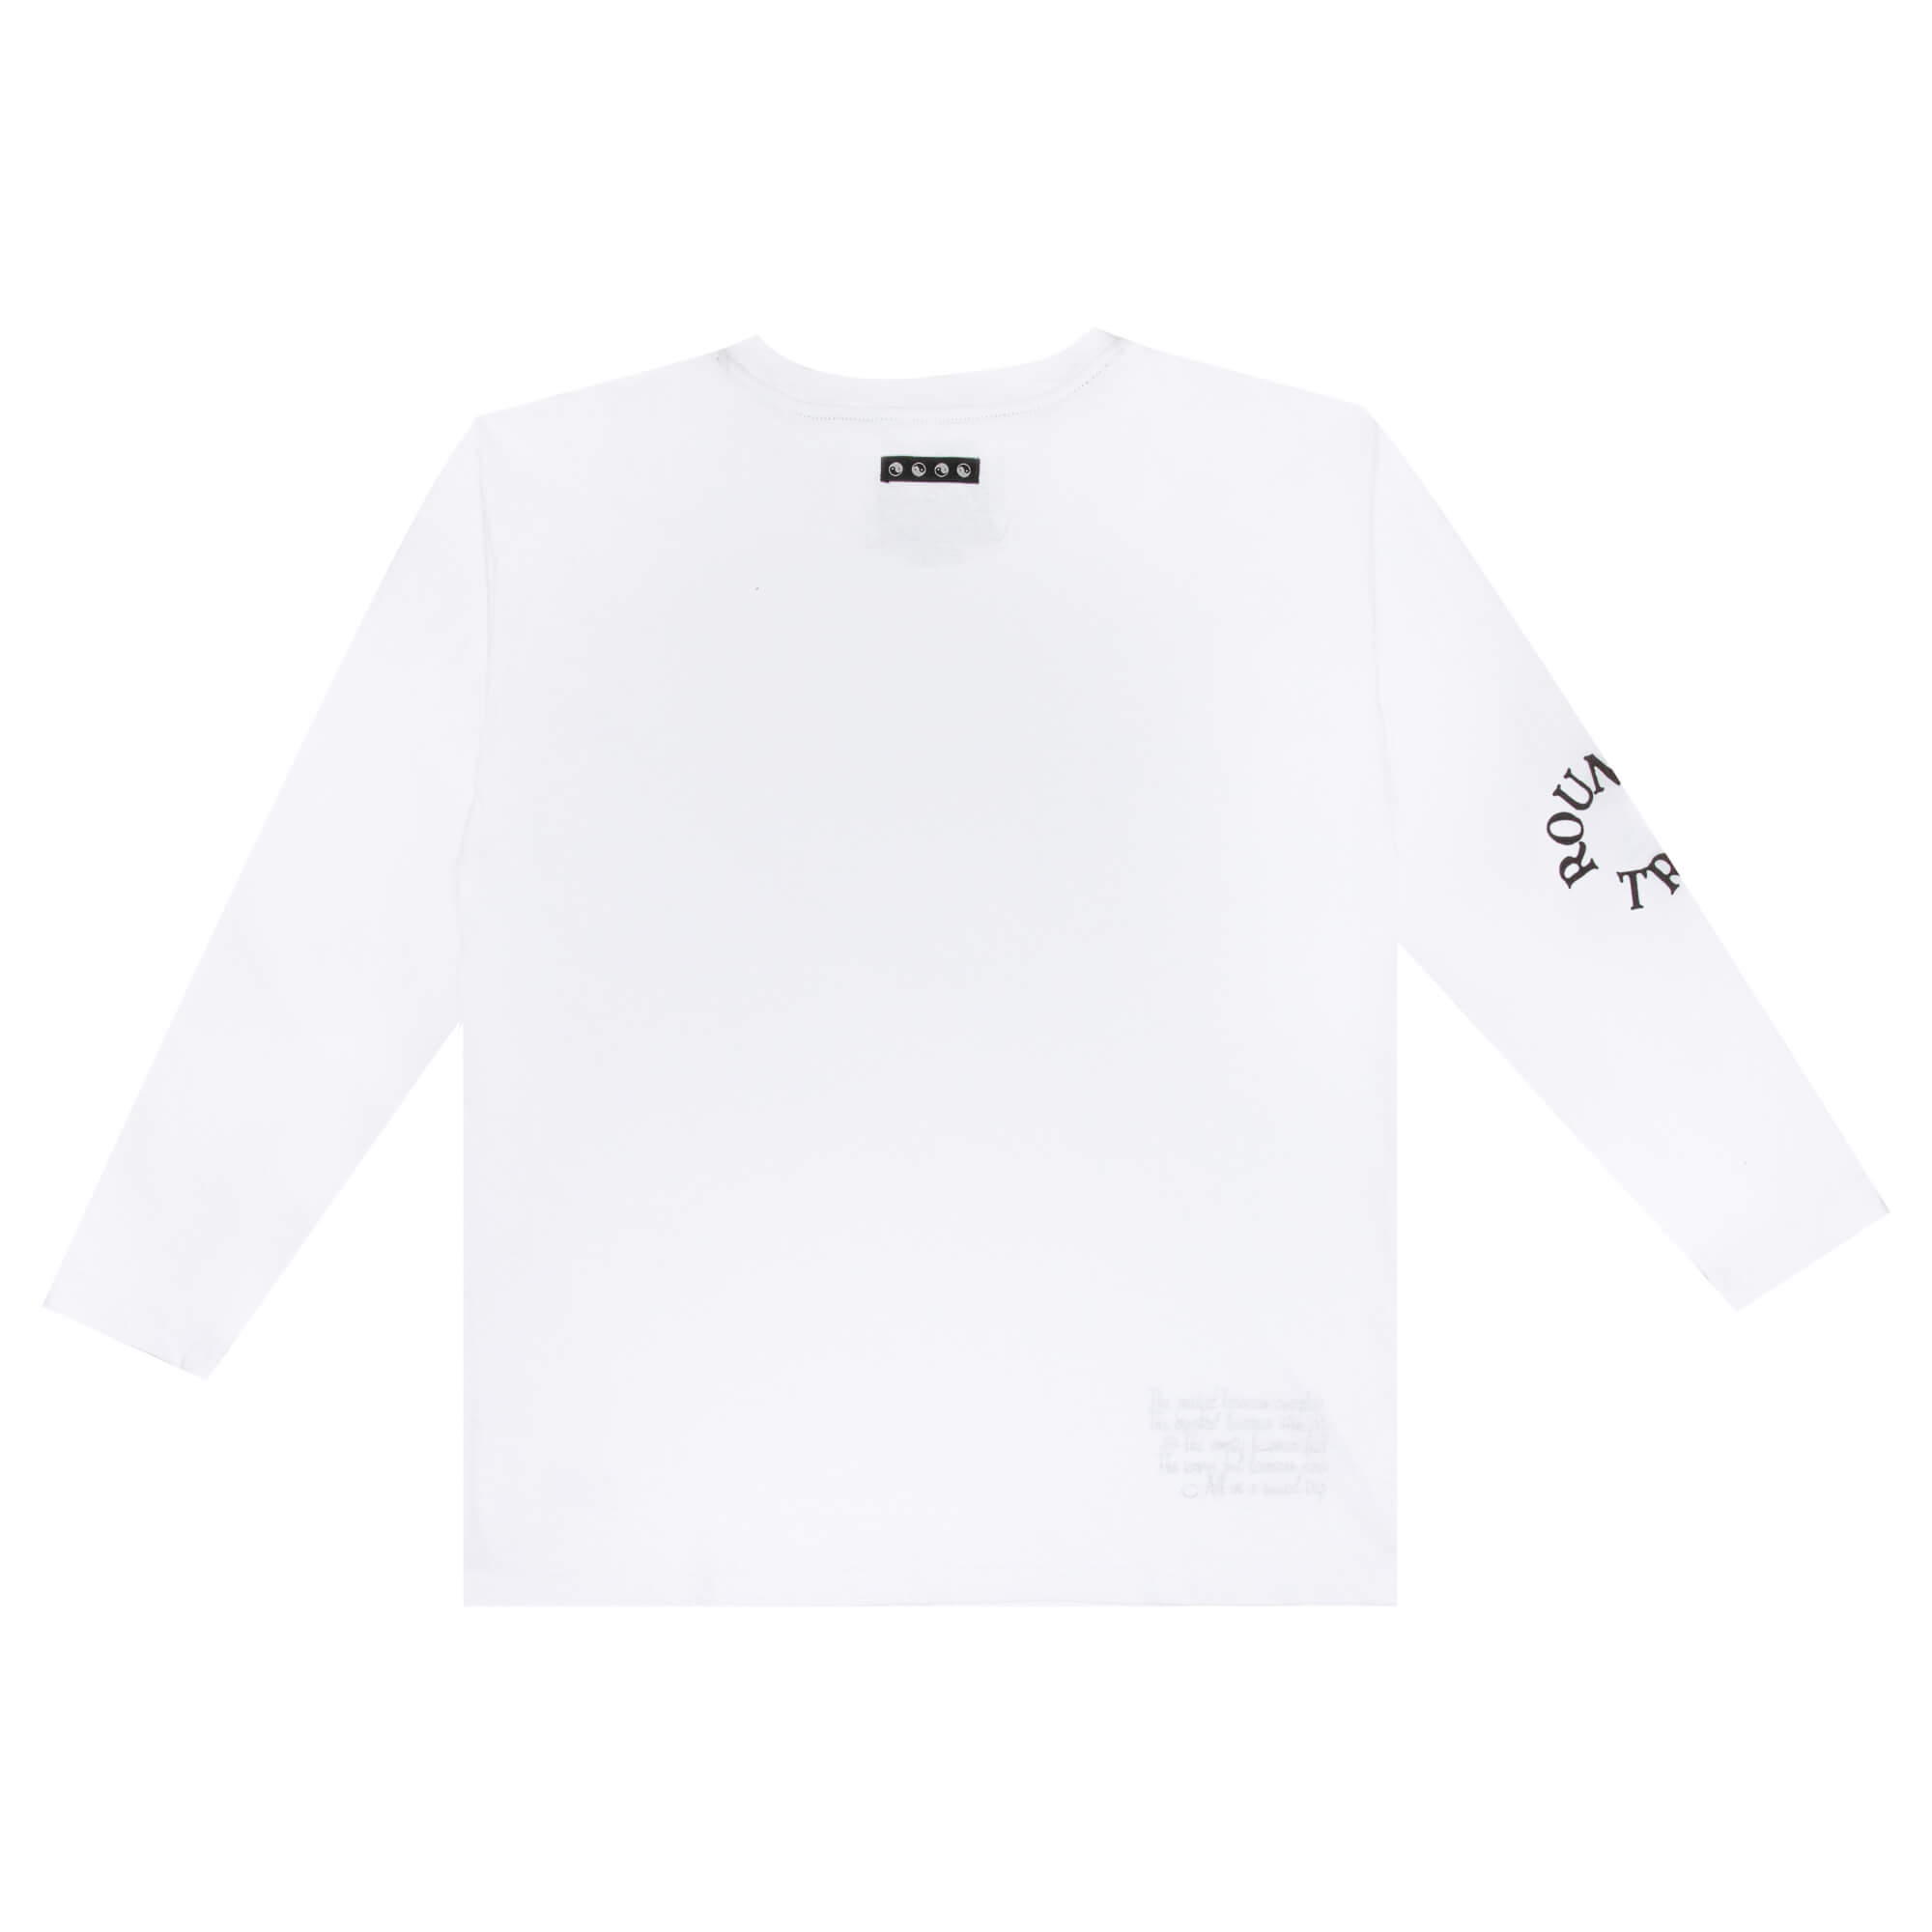 back side of the white round trip longsleeve